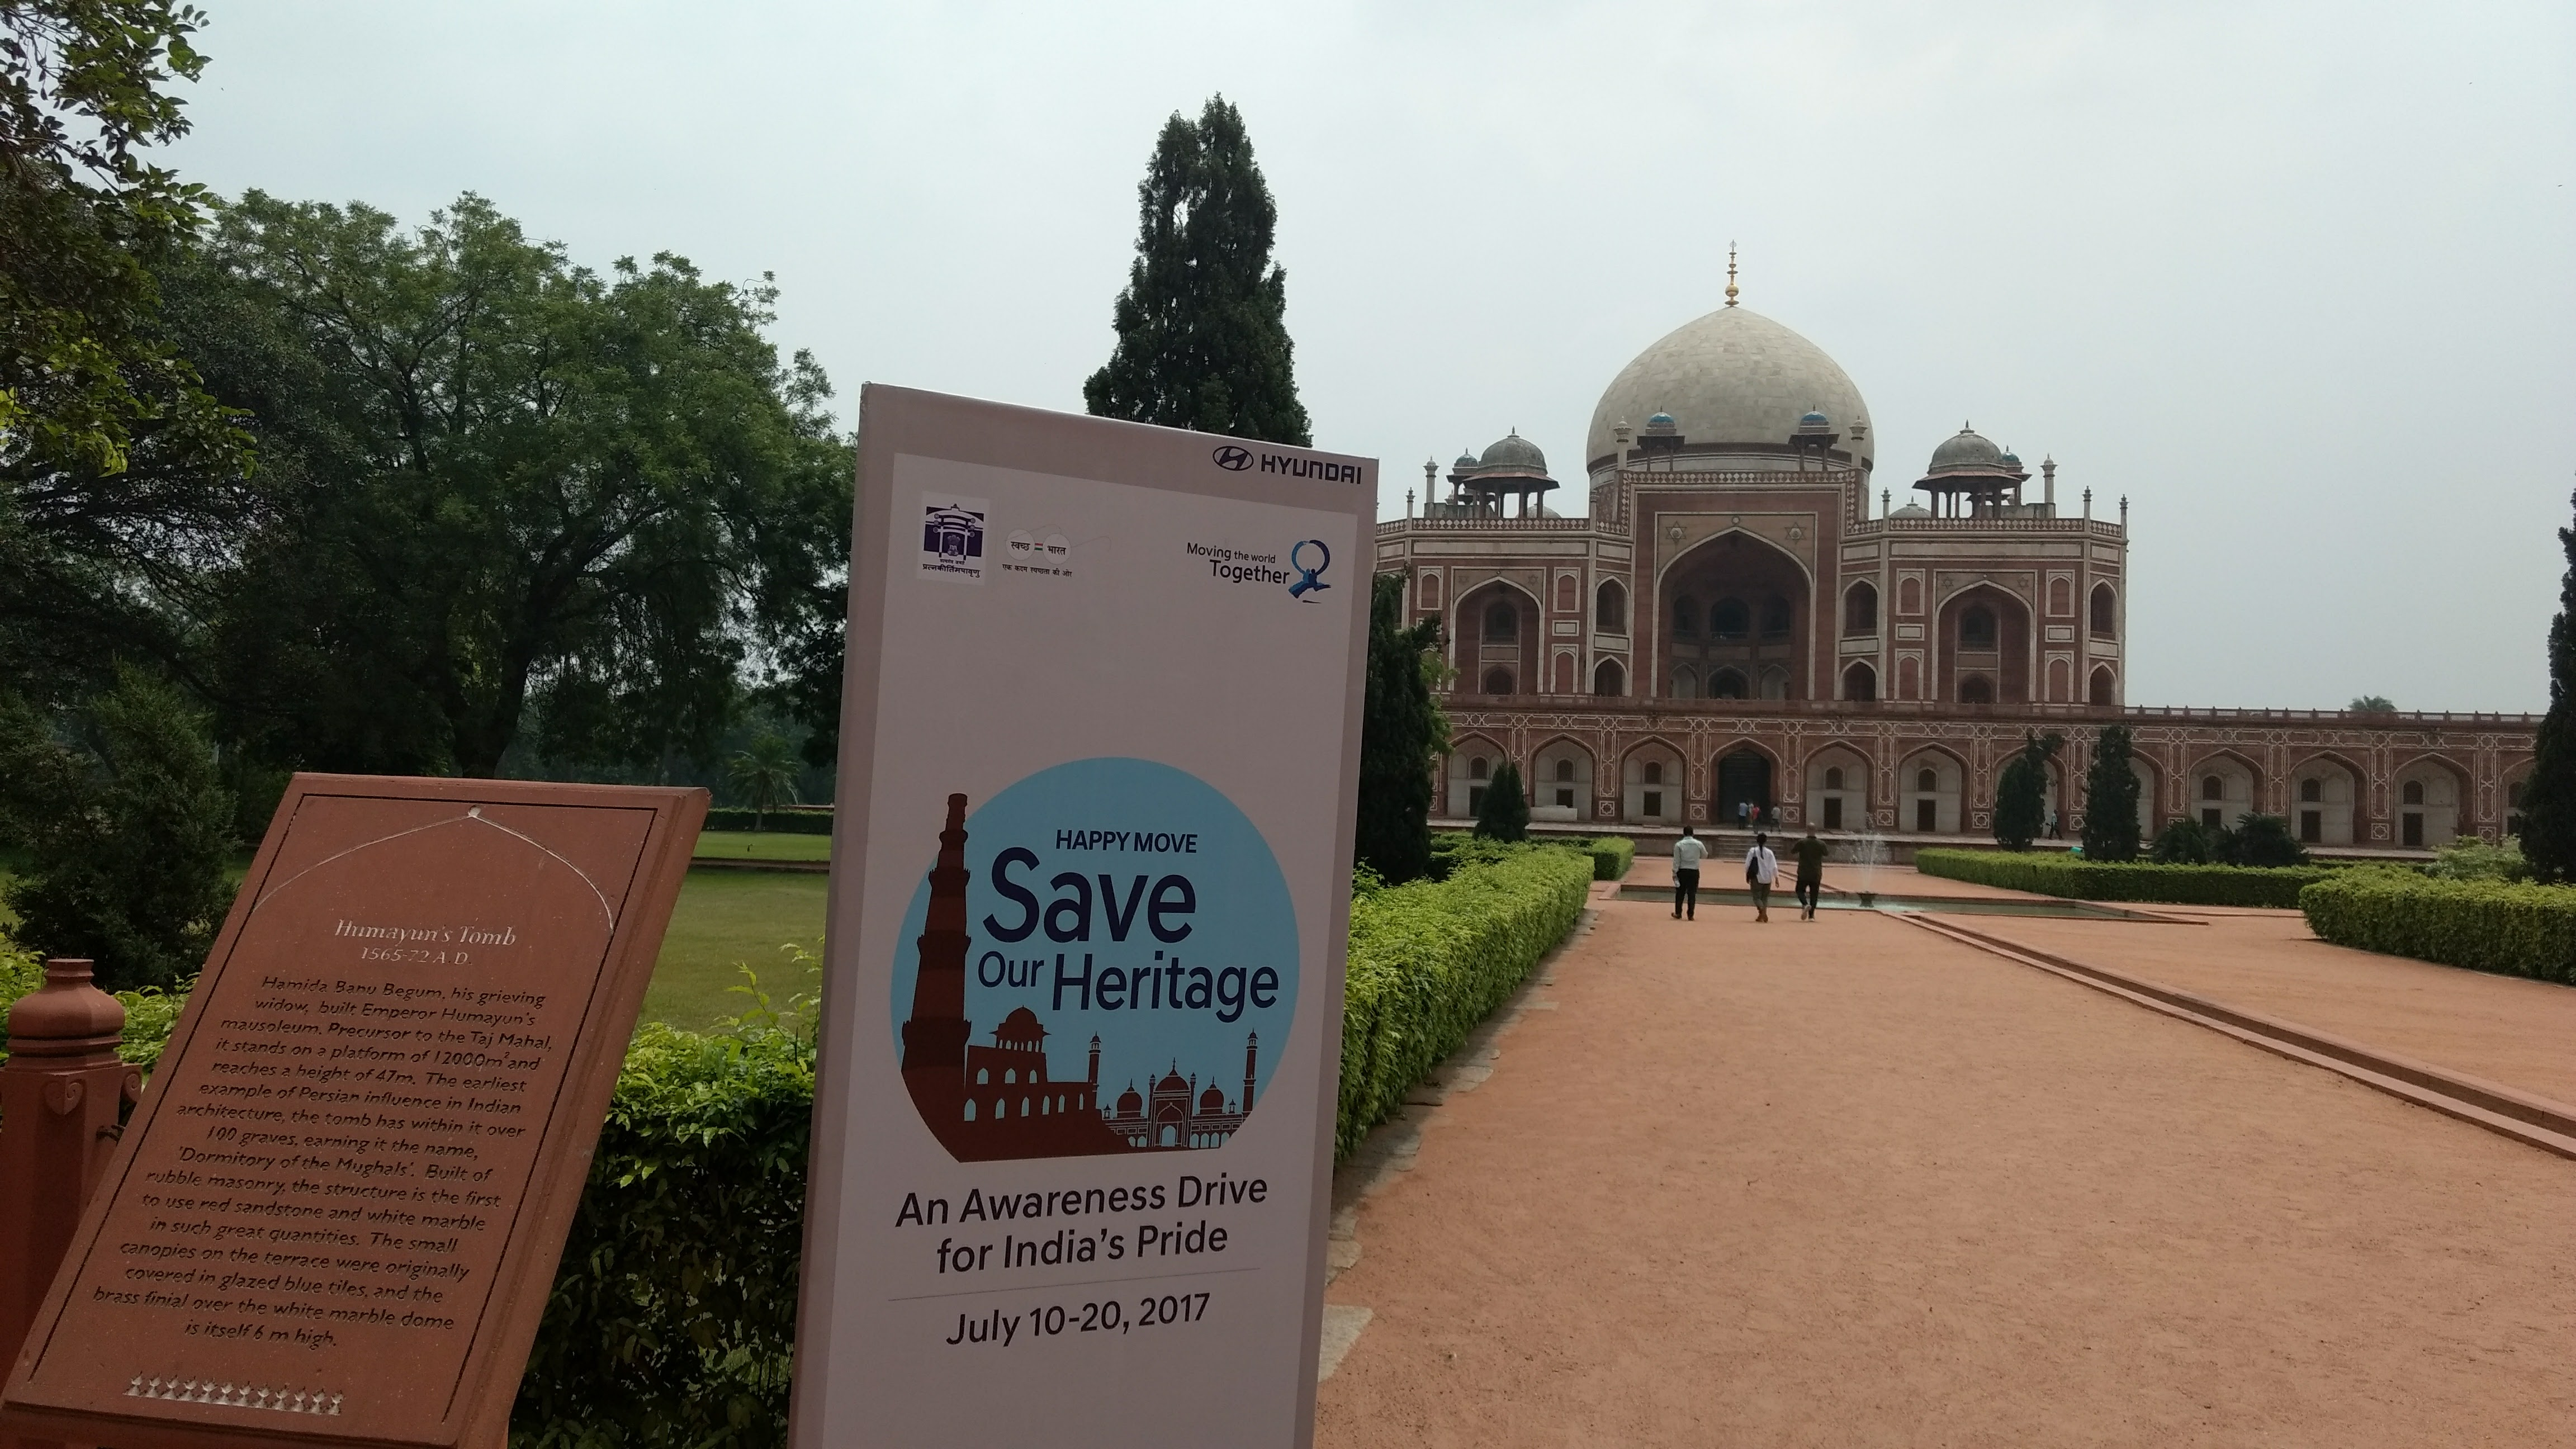 Hyundai Launches 3 rd Phase of 'Happy Move – Save Our Heritage' CSR Campaign